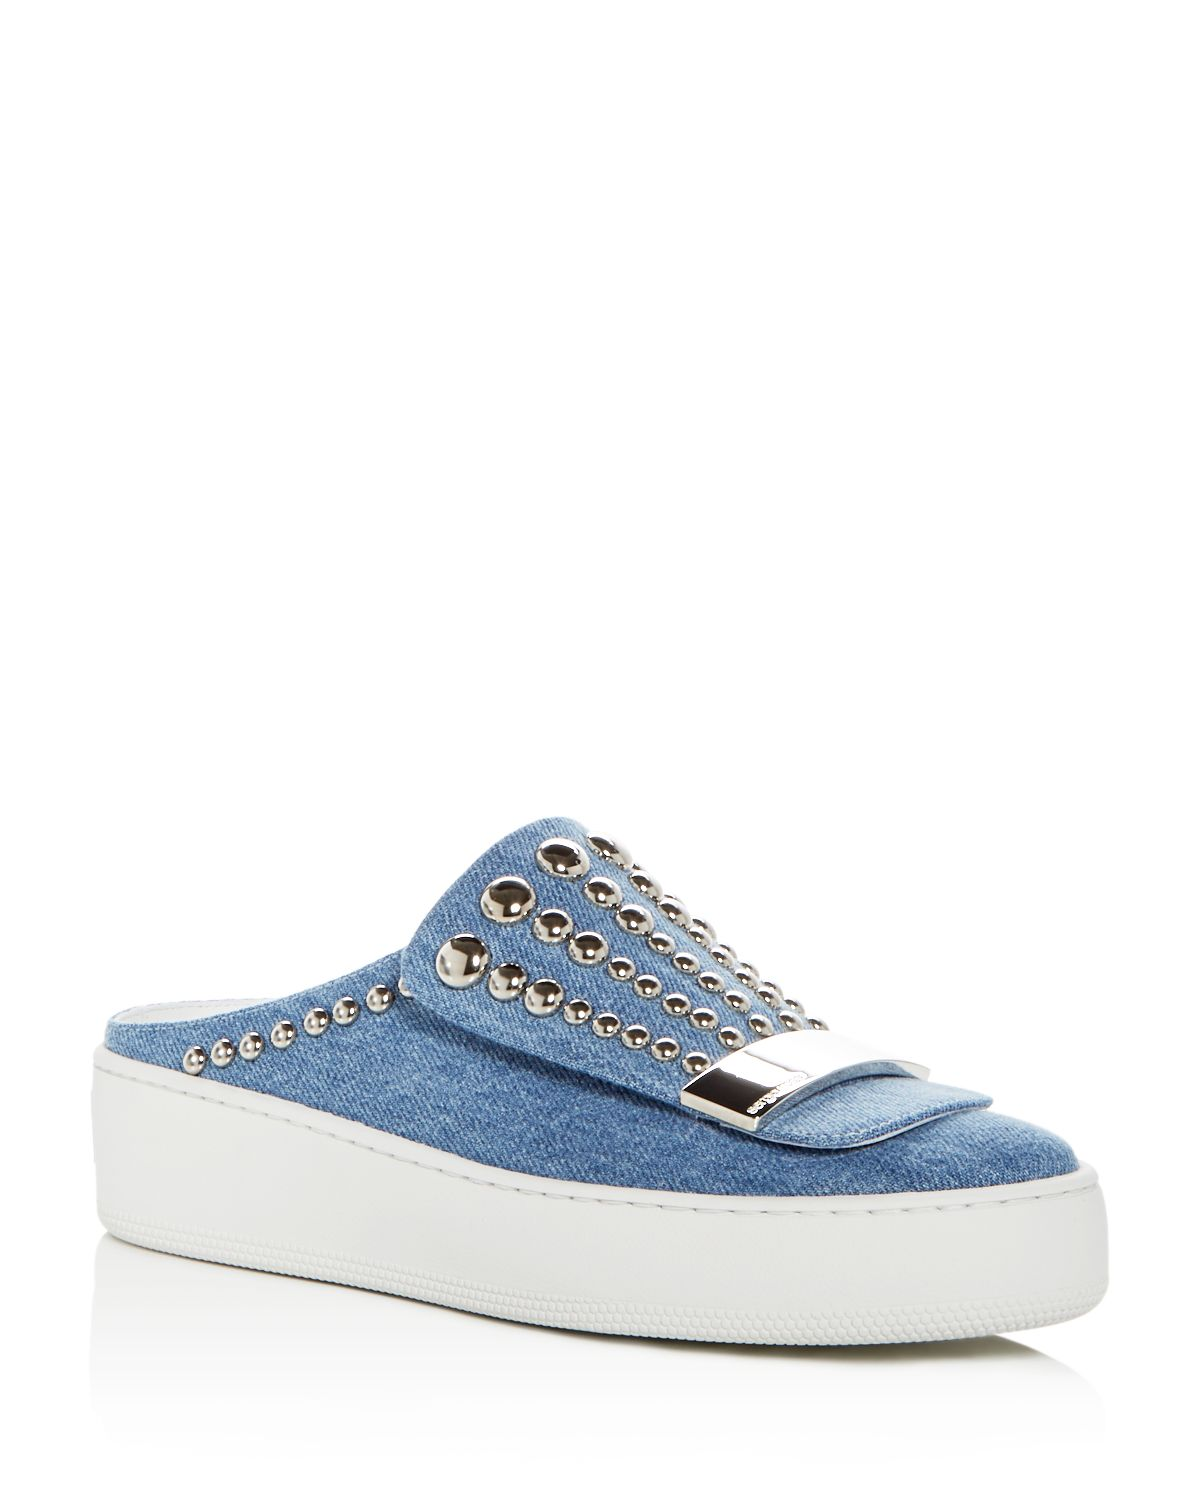 Sergio Rossi Women's Addict Studded Denim Platform Mules